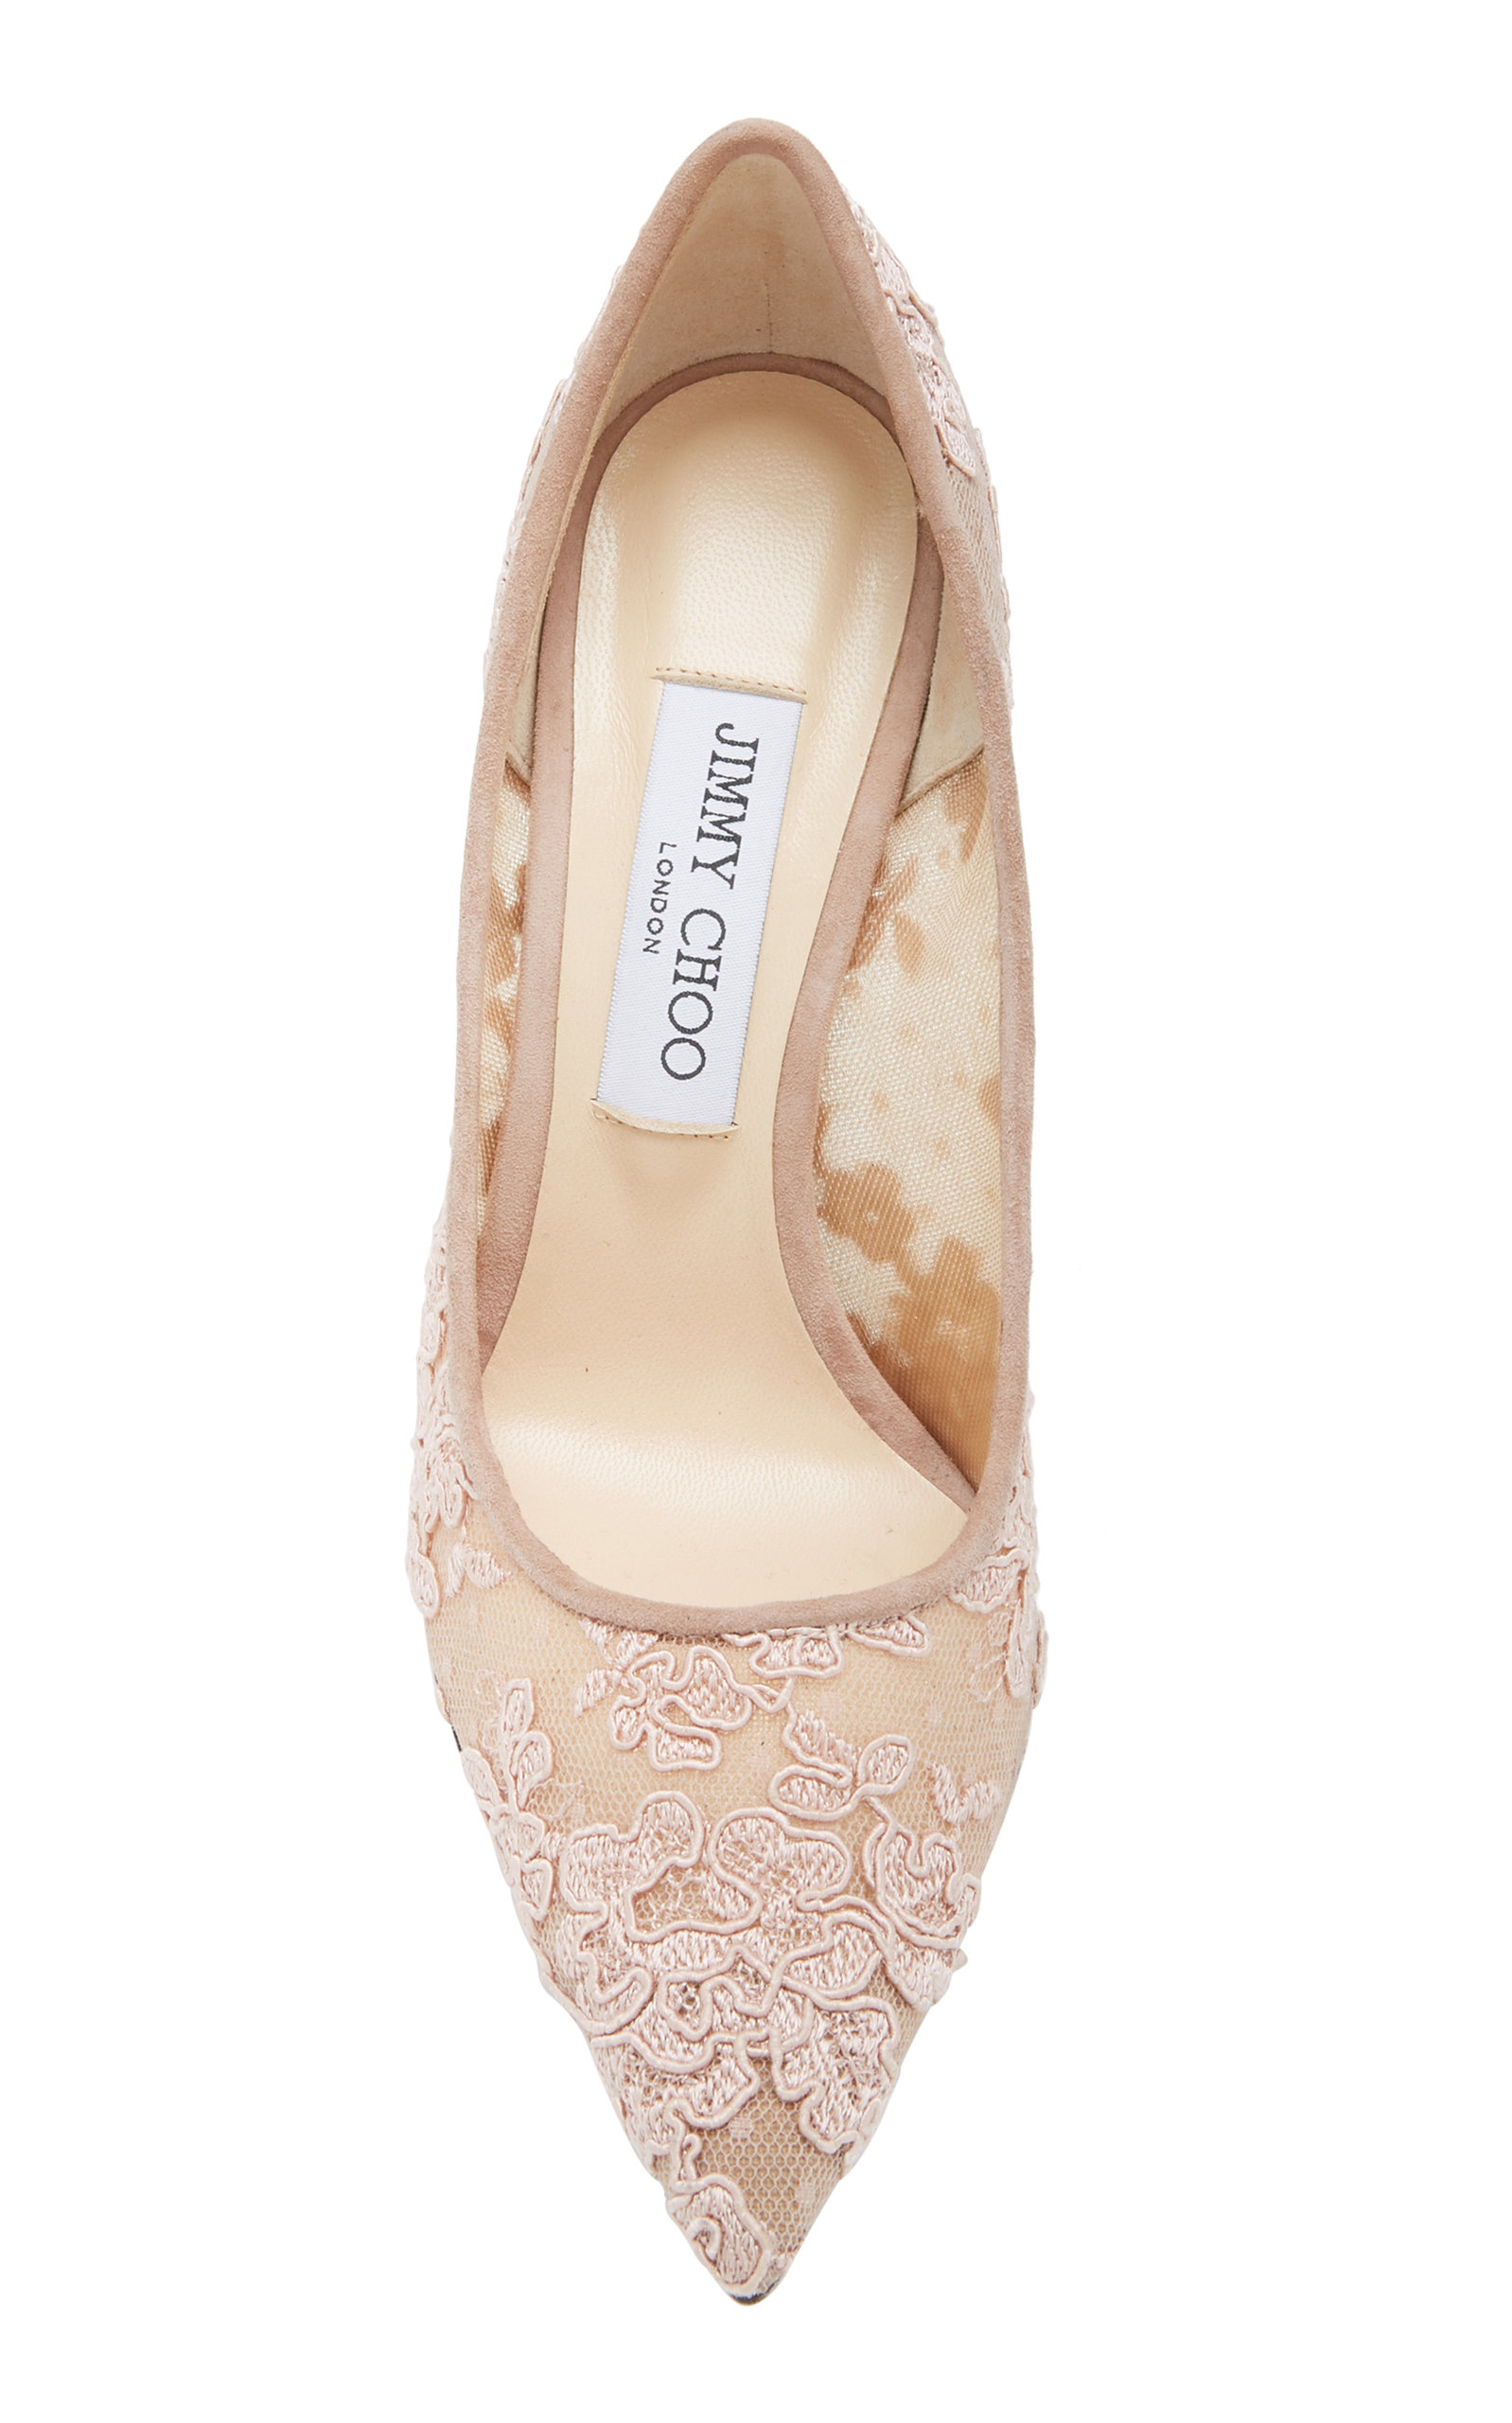 1bbf1199991 Jimmy ChooLove Floral-Lace Pumps. CLOSE. Loading. Loading